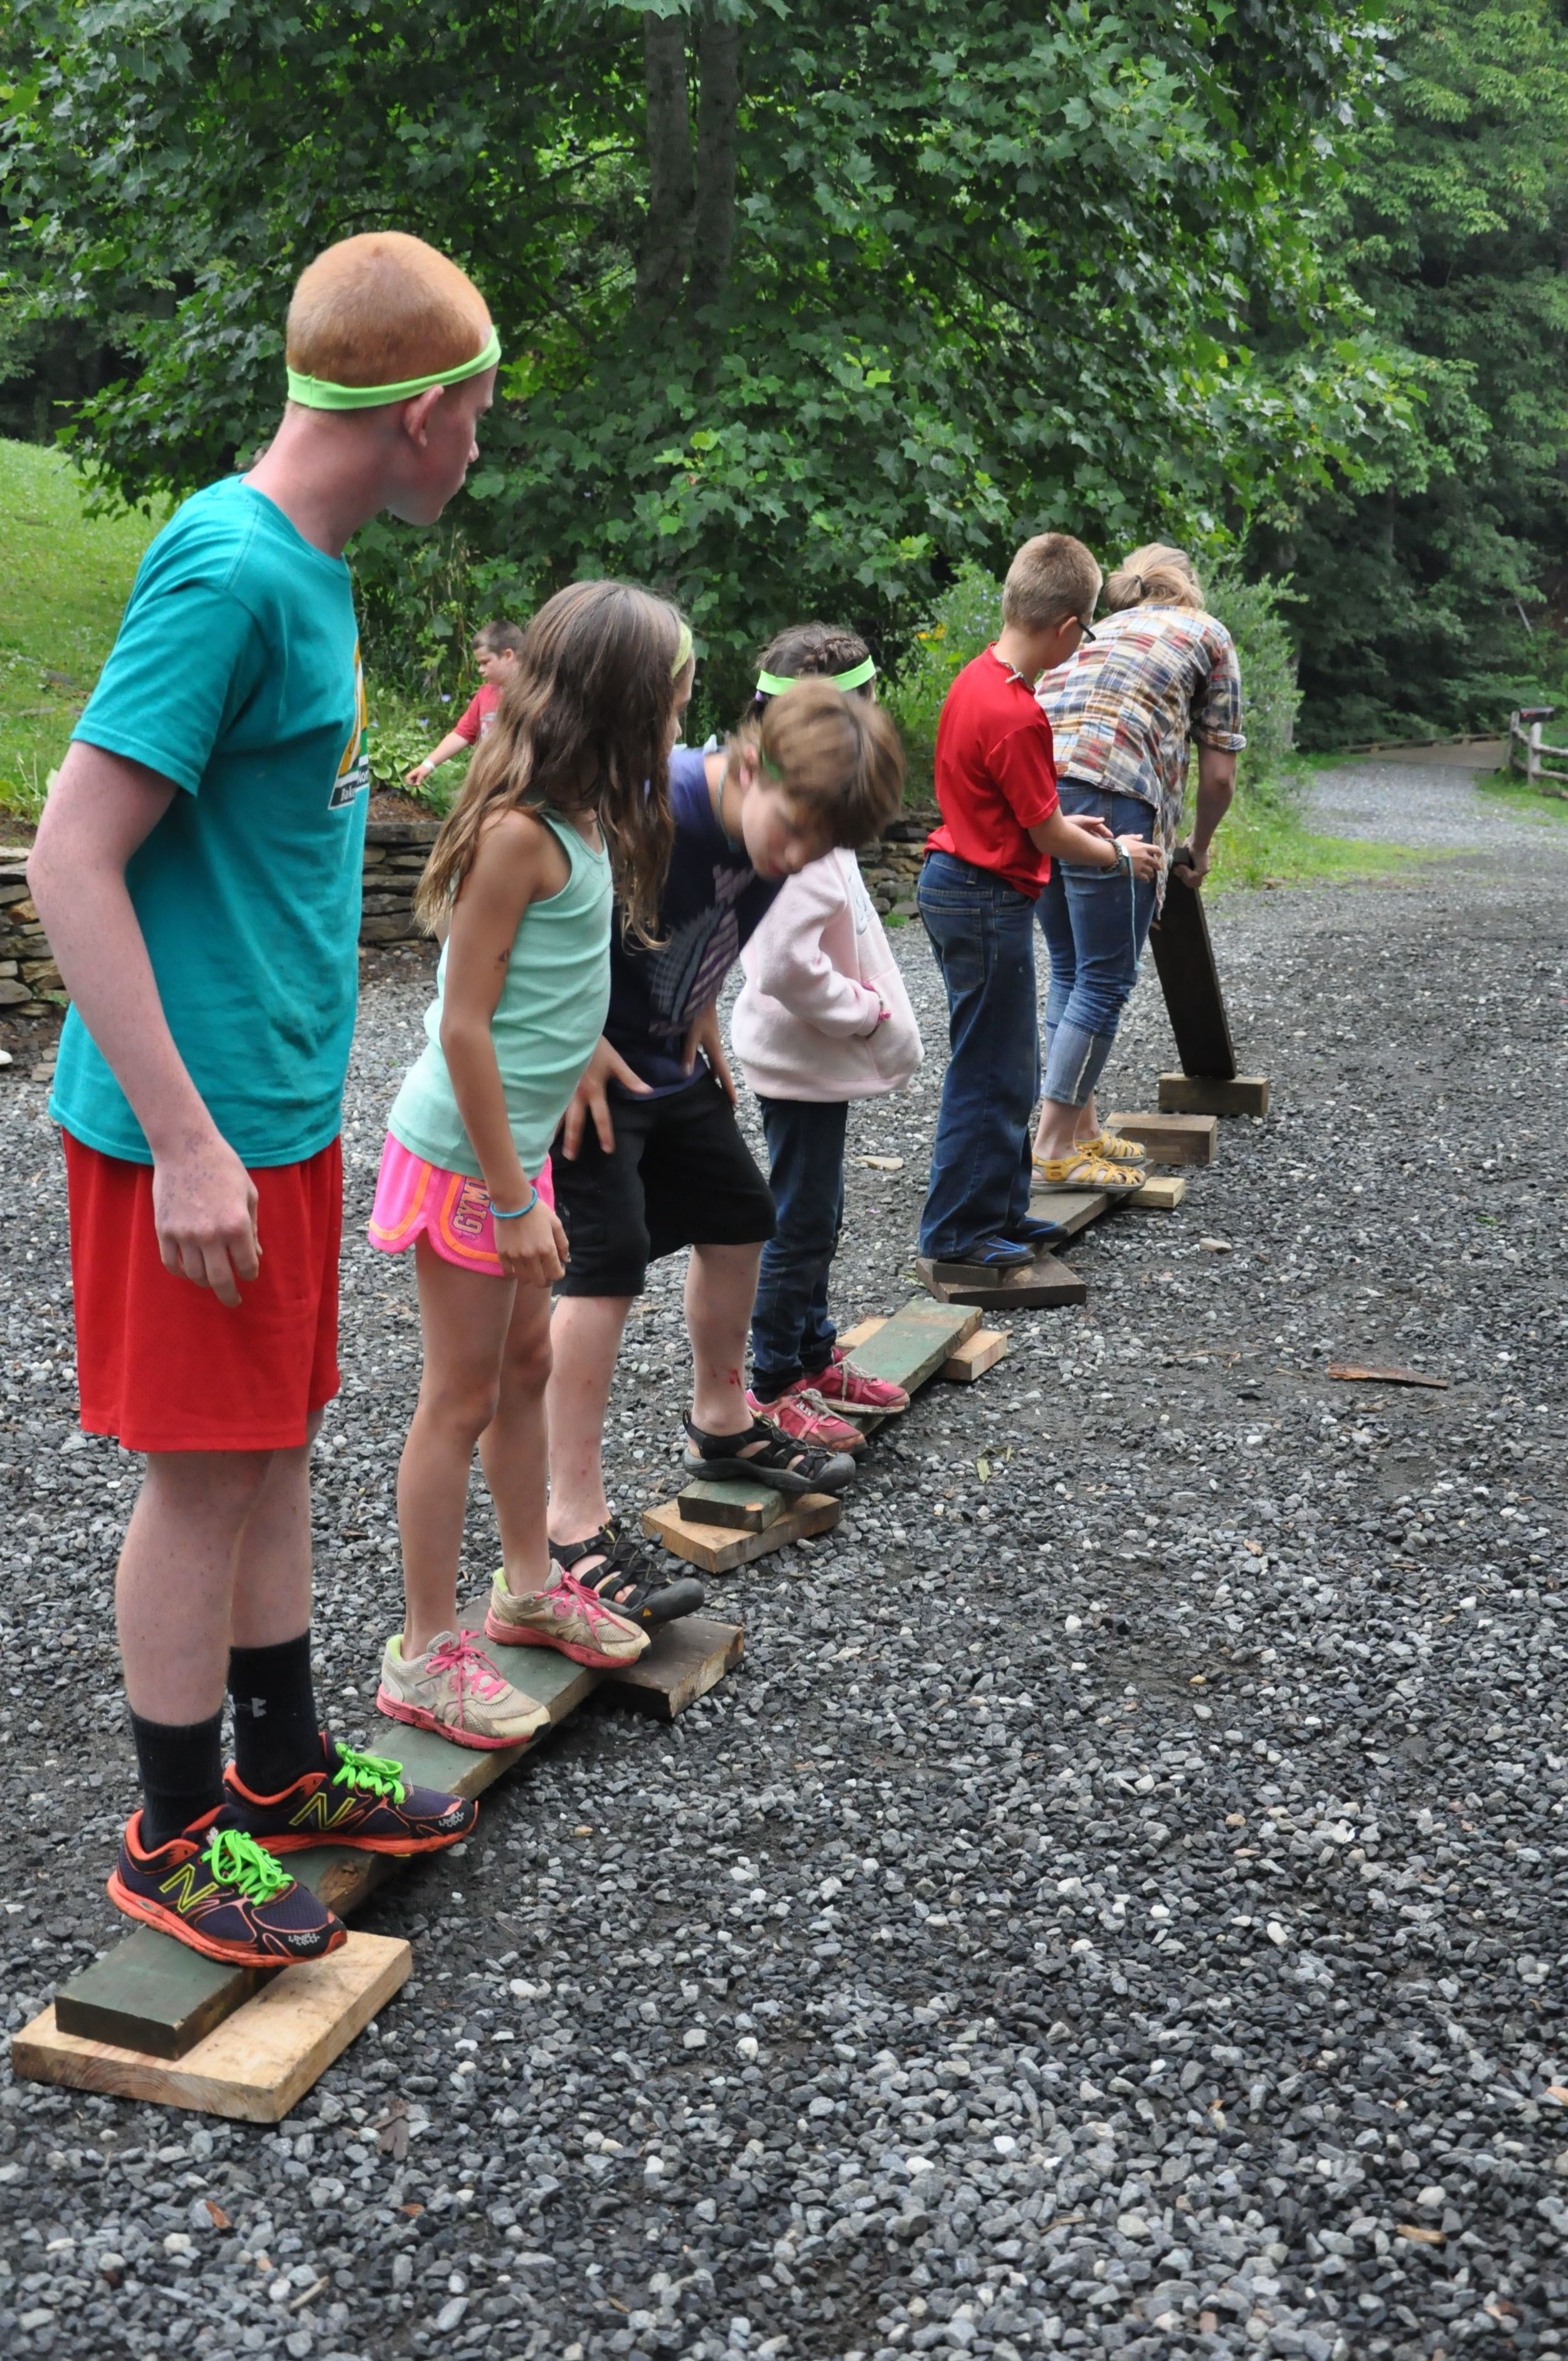 the-teams-had-to-learn-patience-and-balance-in-the-plank-challenge-olson-bella-philippe-morgan-and-dylan-patiently-wait-for-kelsey-to-hand-up-the-next-board.jpg